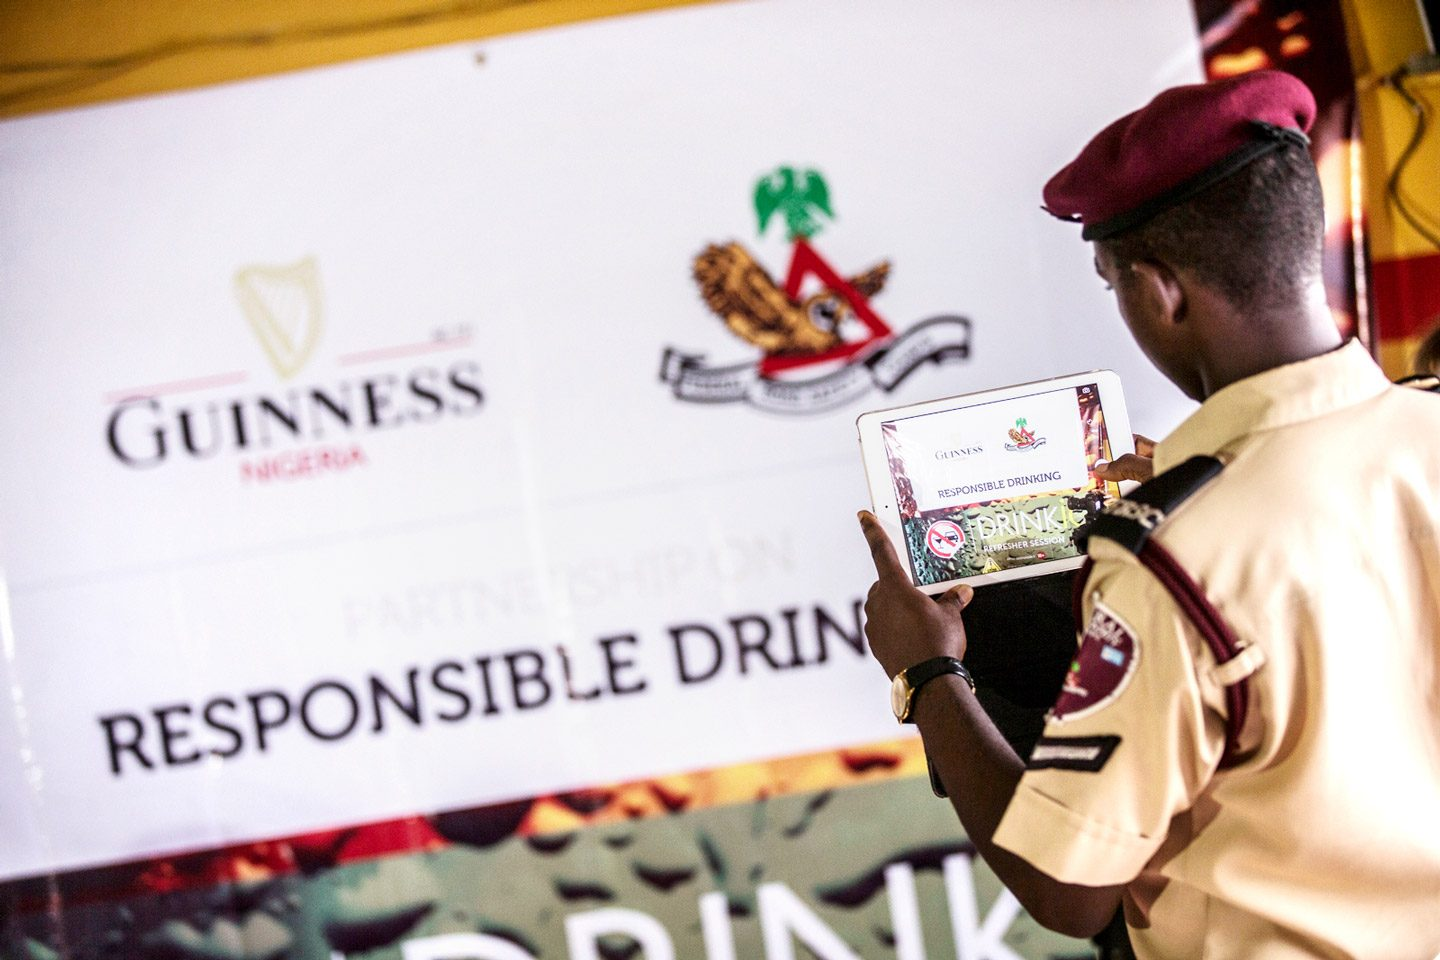 Leadership in alcohol: Road safety official takes part in Guiness Nigeria sponsored road safety campaign